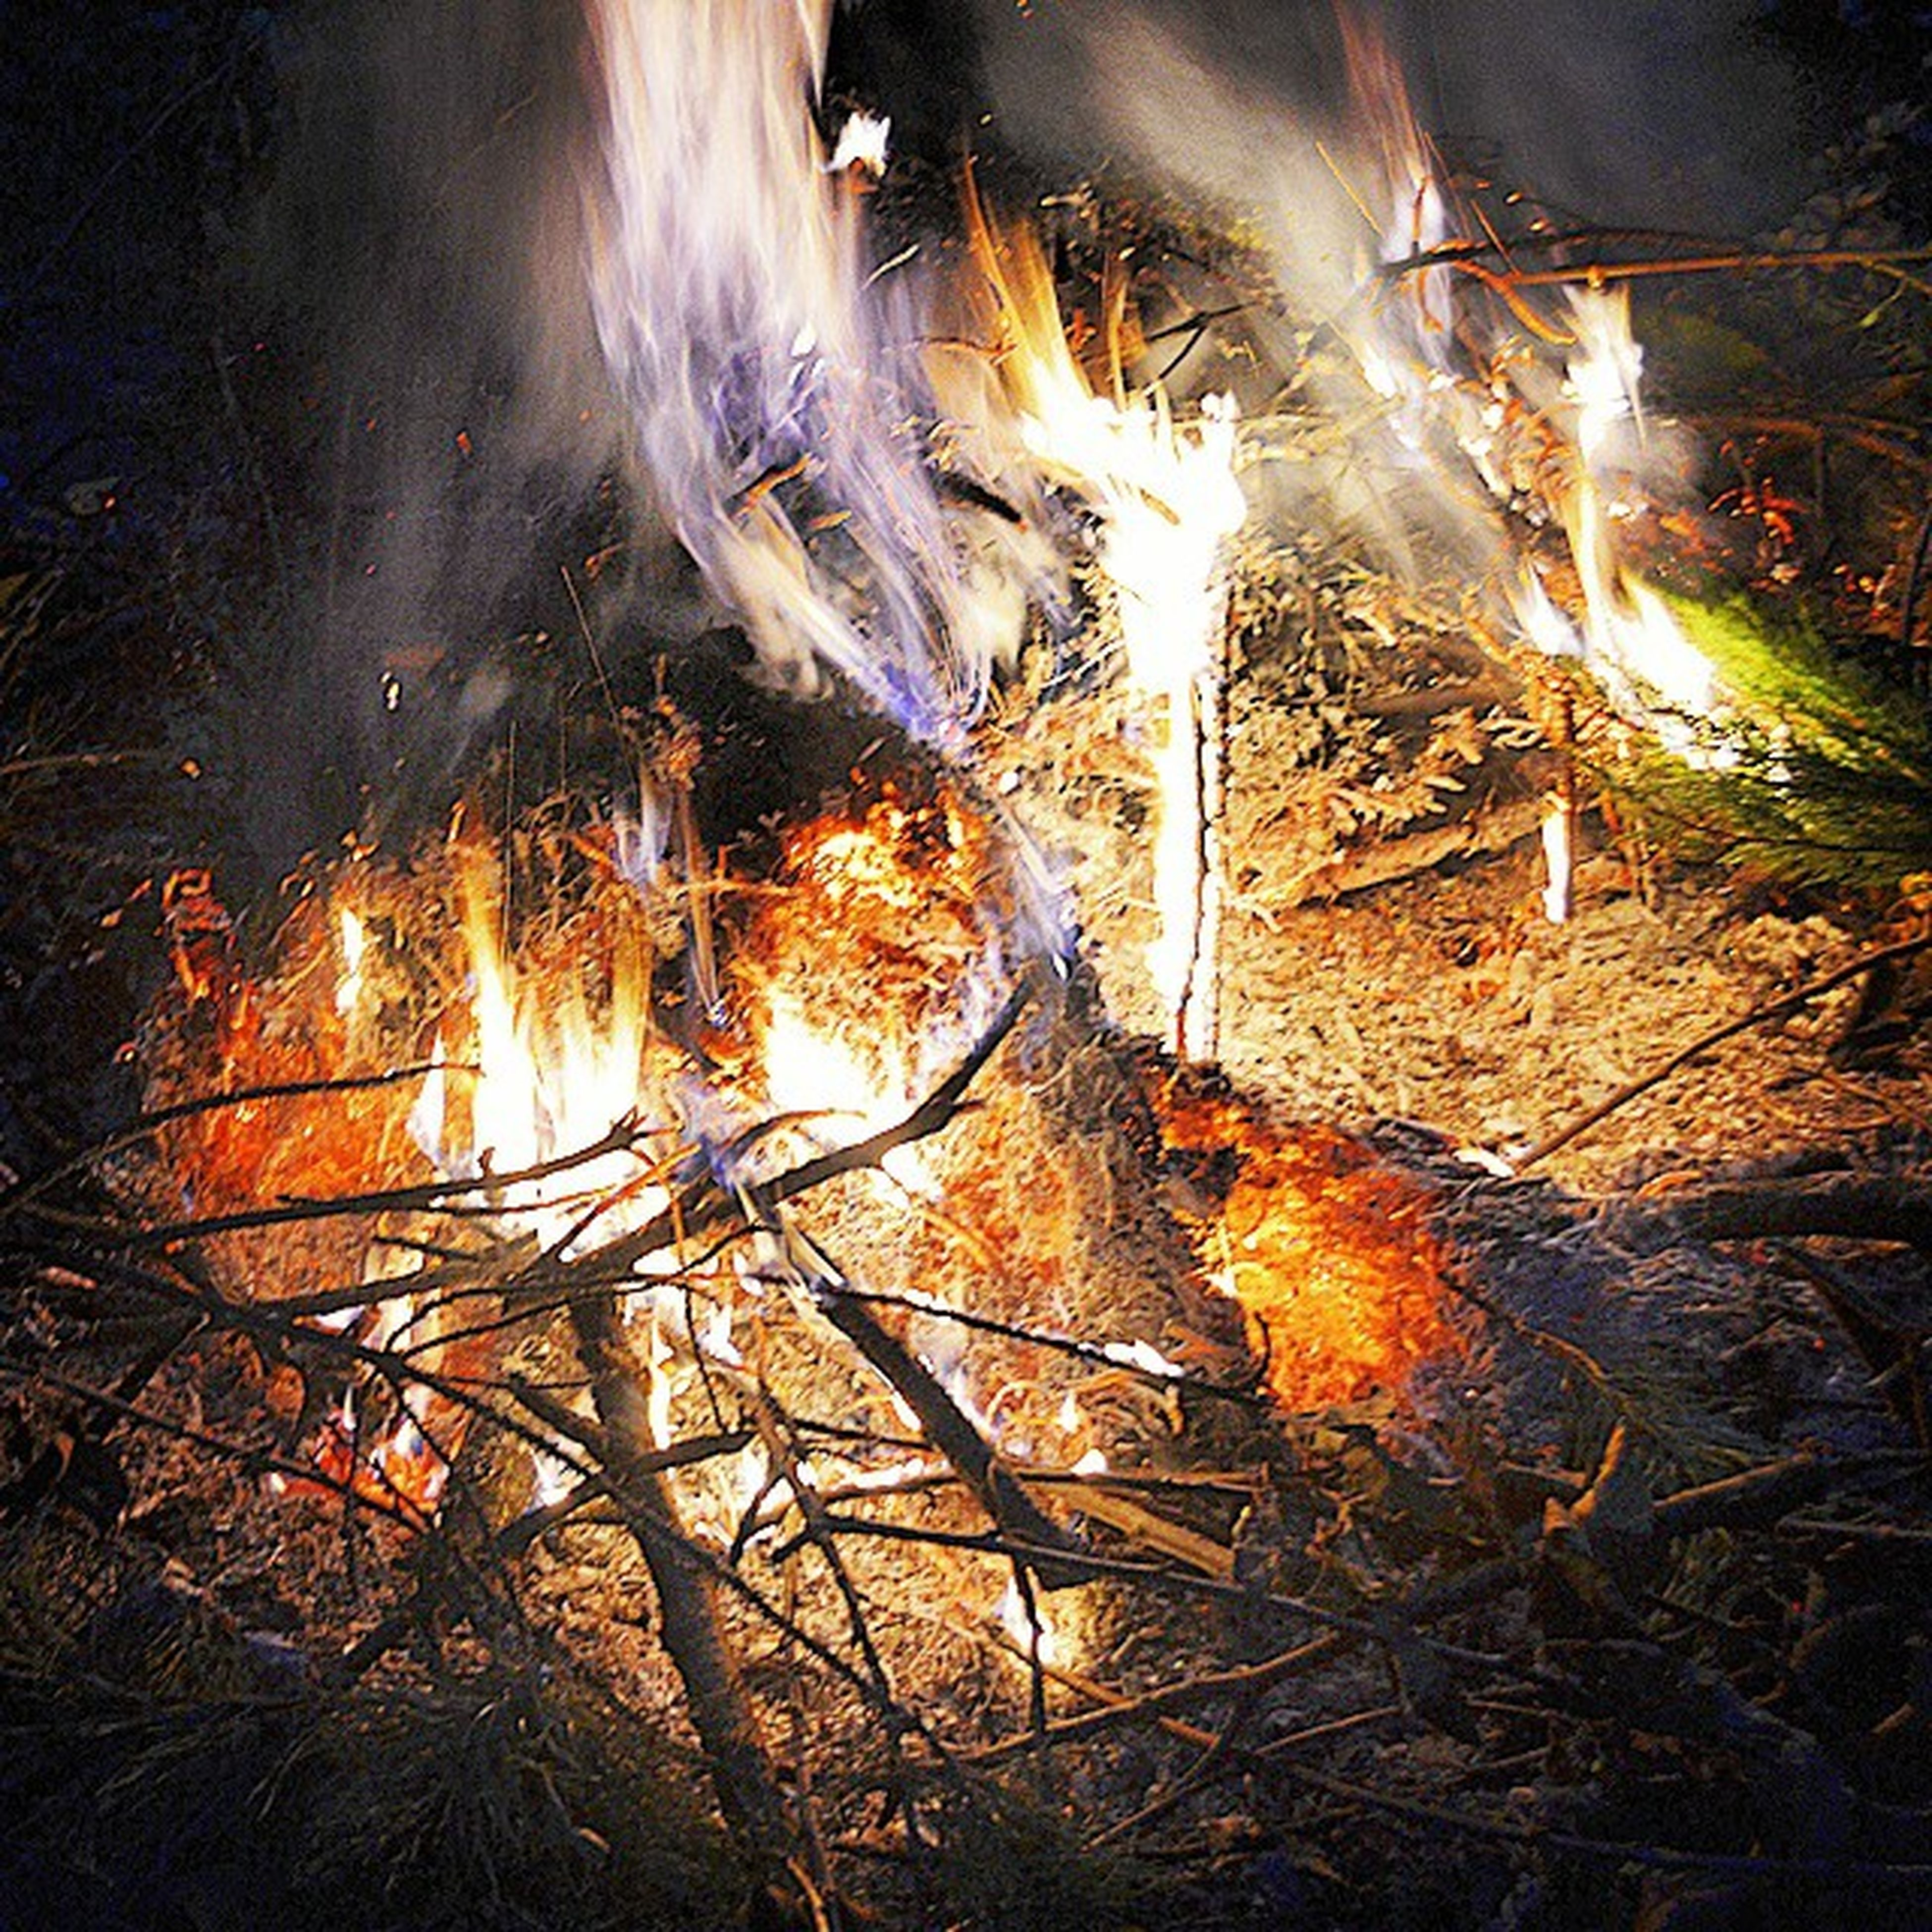 burning, flame, heat - temperature, night, fire - natural phenomenon, glowing, forest, bonfire, nature, sunlight, firewood, water, tree, outdoors, tranquility, no people, log, fire, orange color, reflection